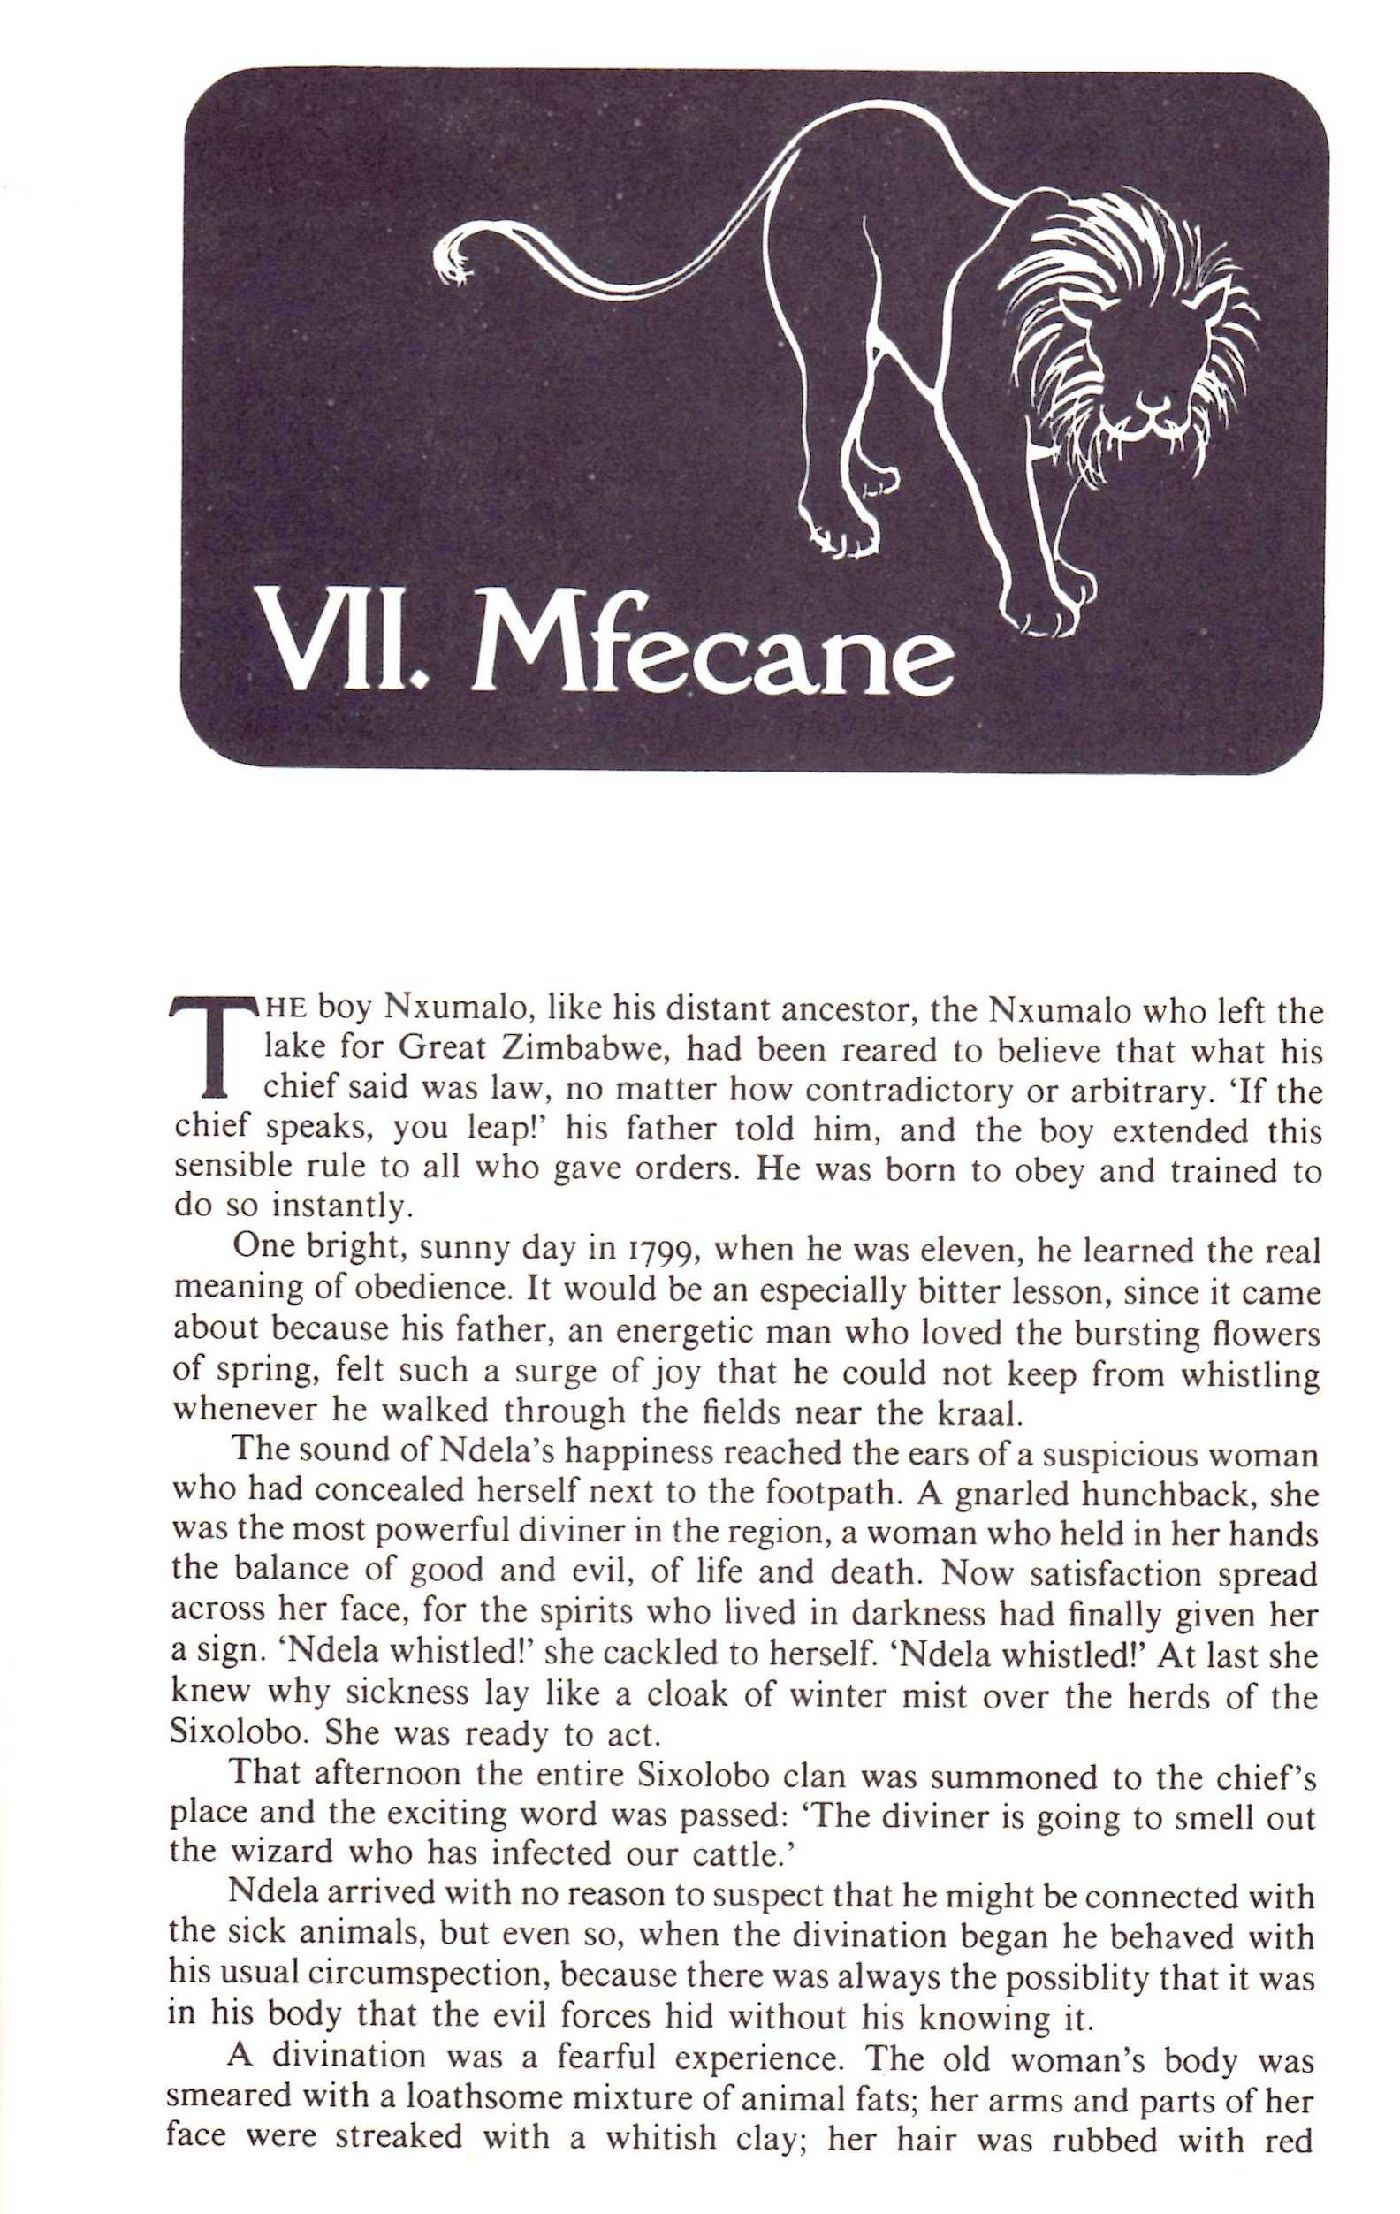 Excerpt from Mfecane chapter, The Covenant | James A Michener 1